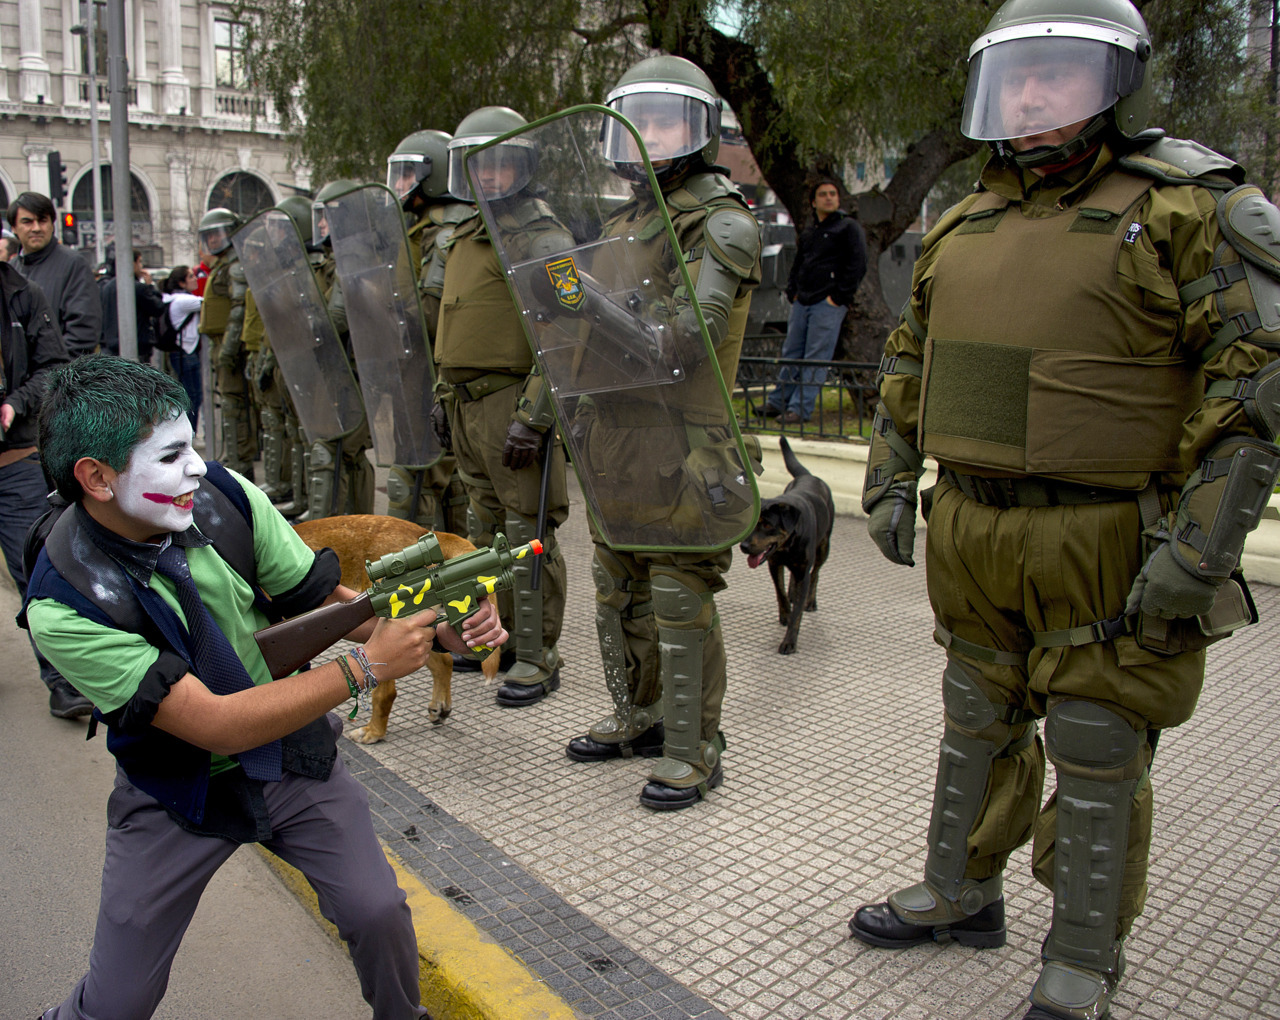 Why so serious, riot police?A student plays with a toy gun in front of a line of riot police officers during protests in Santiago, Chile, on August 25, 2011, during a 48-hour national strike. (Martin Bernetti/AFP/Getty Images)